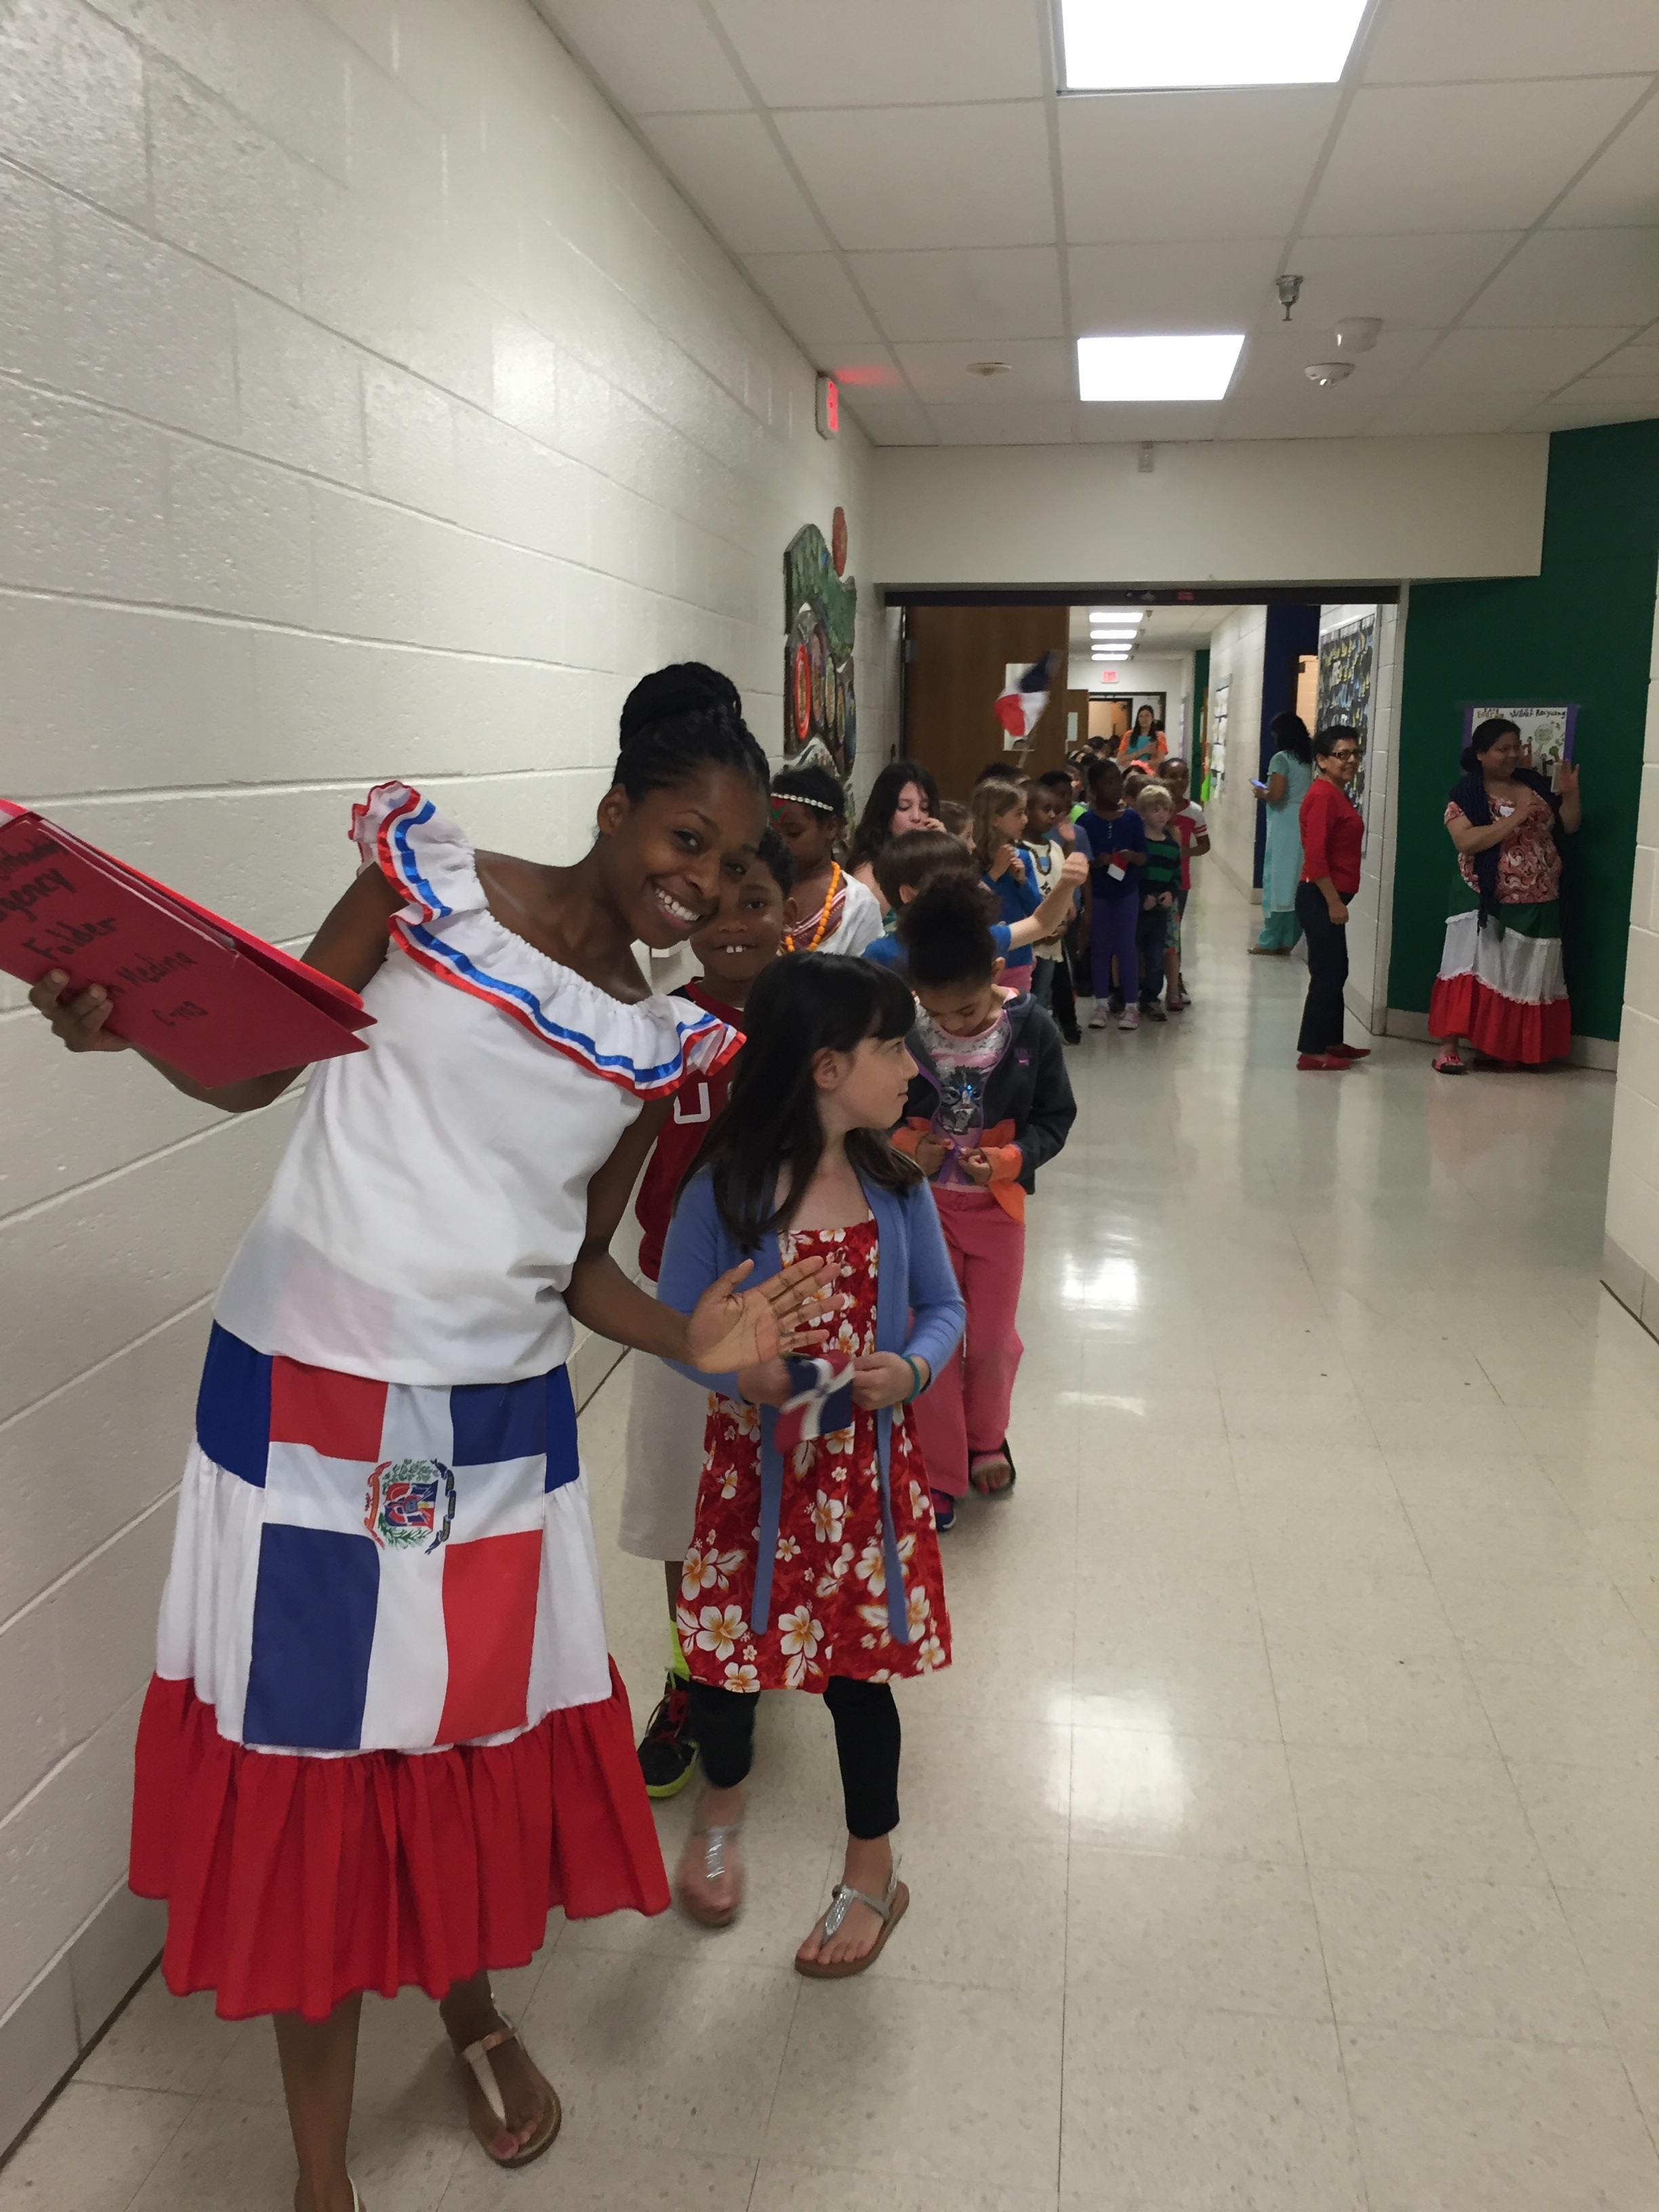 Srta. Medina and her class parading through the school.